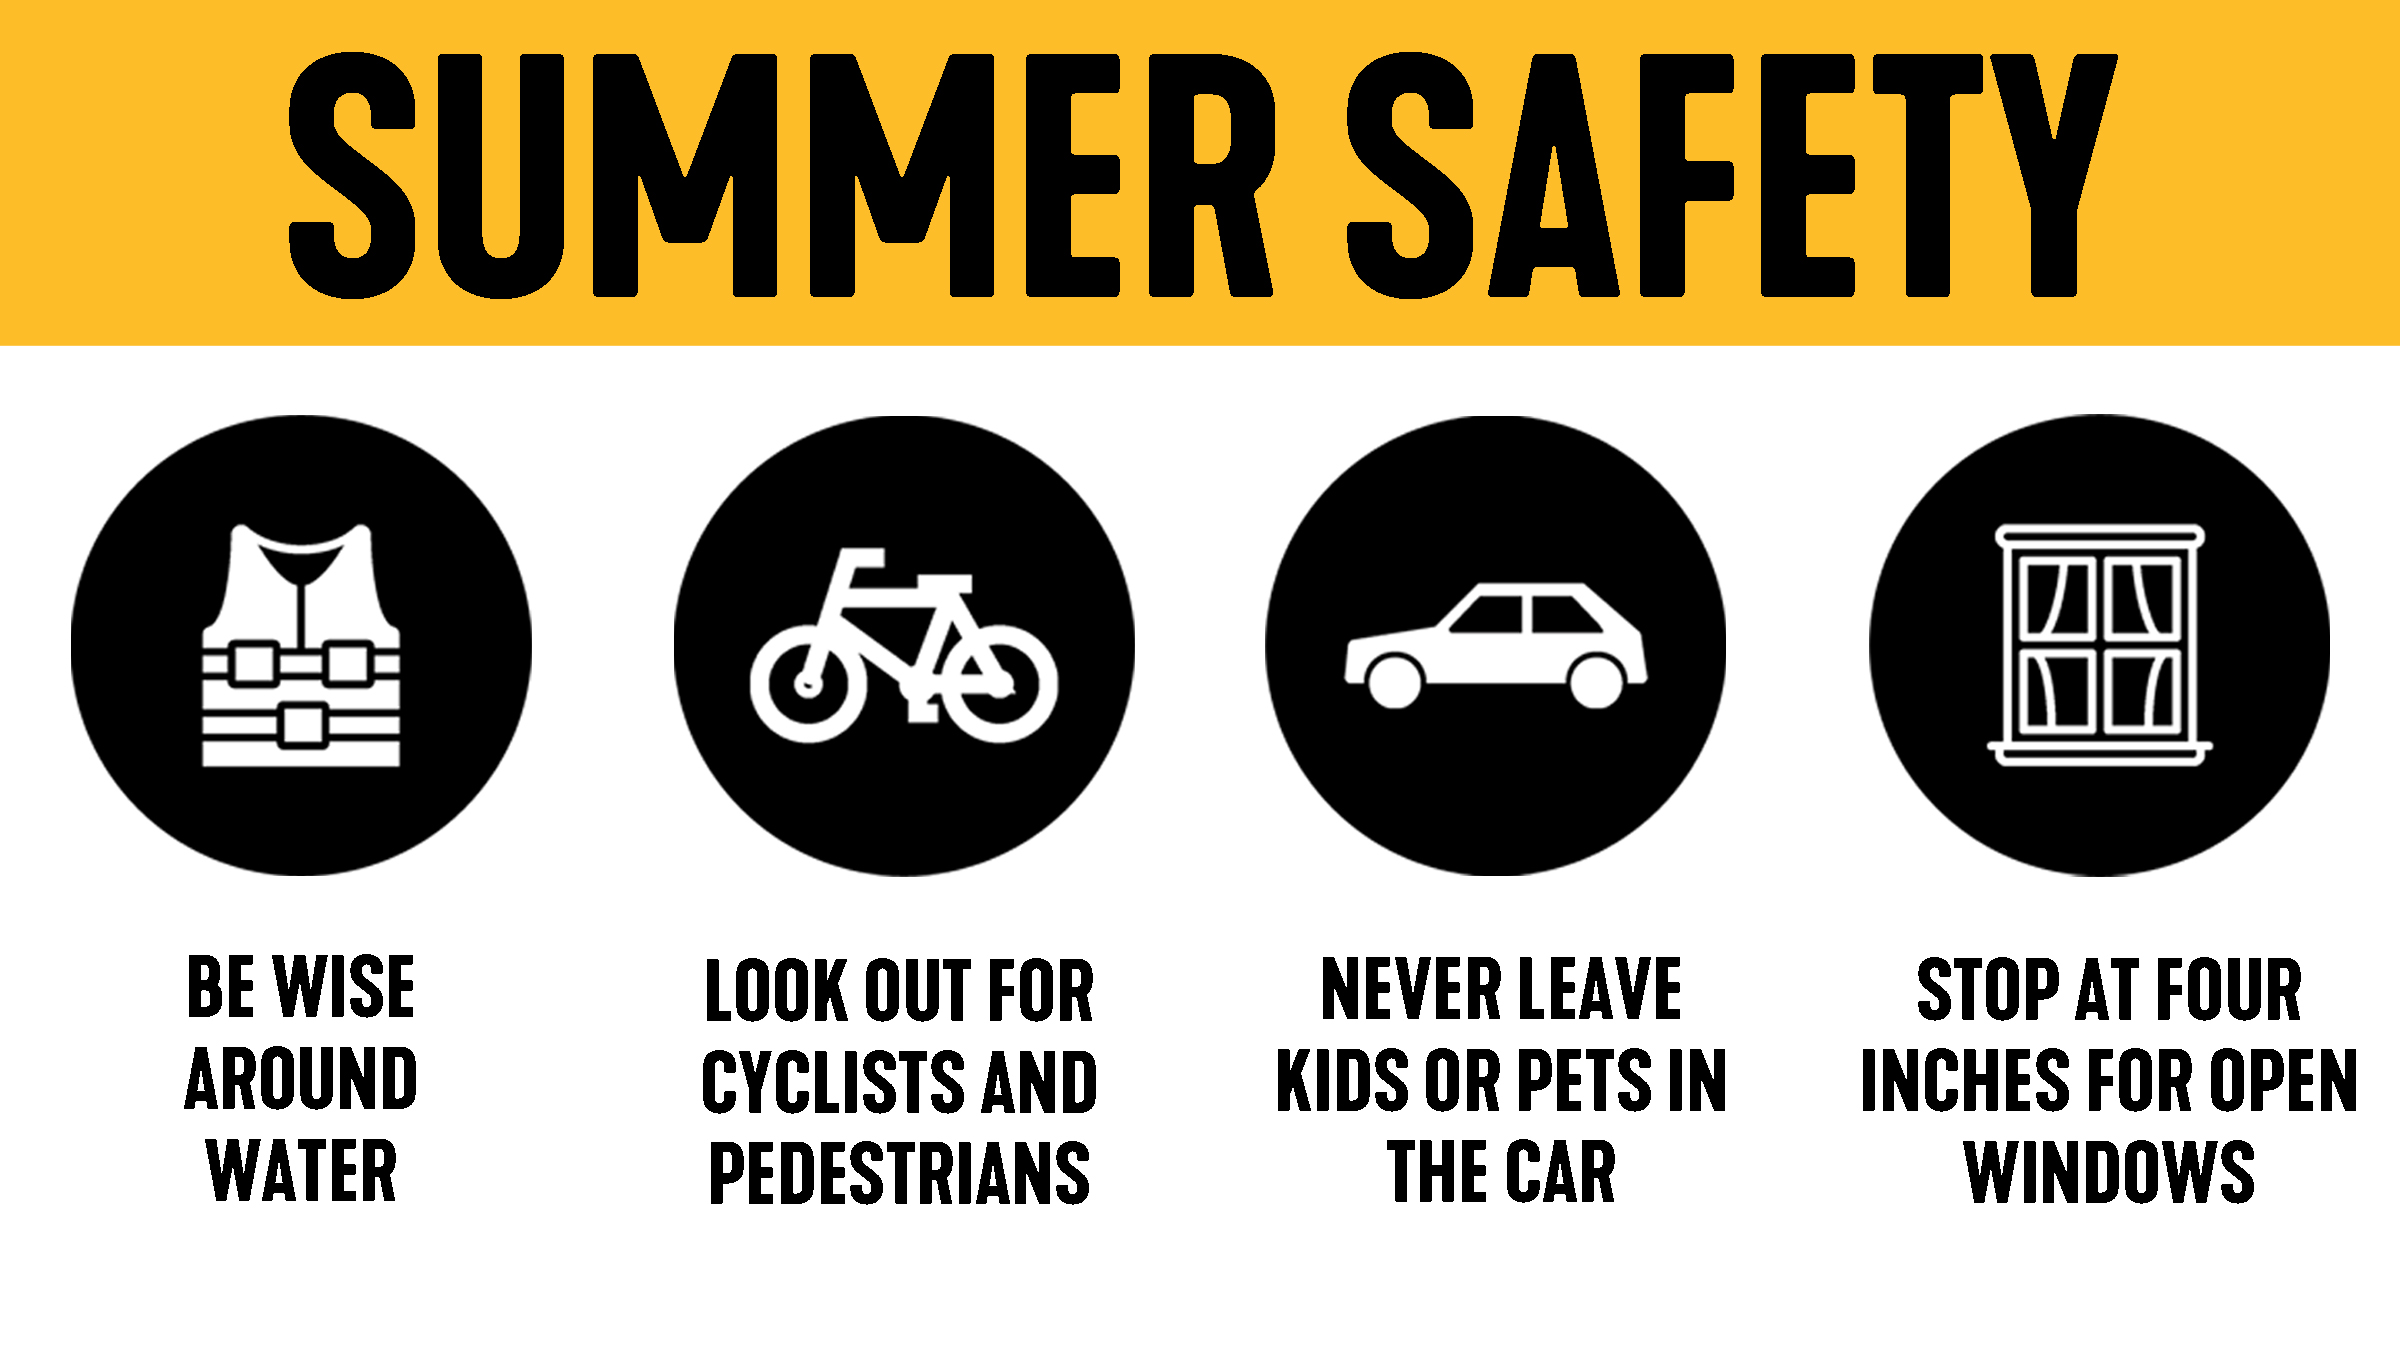 Summer Safety graphic